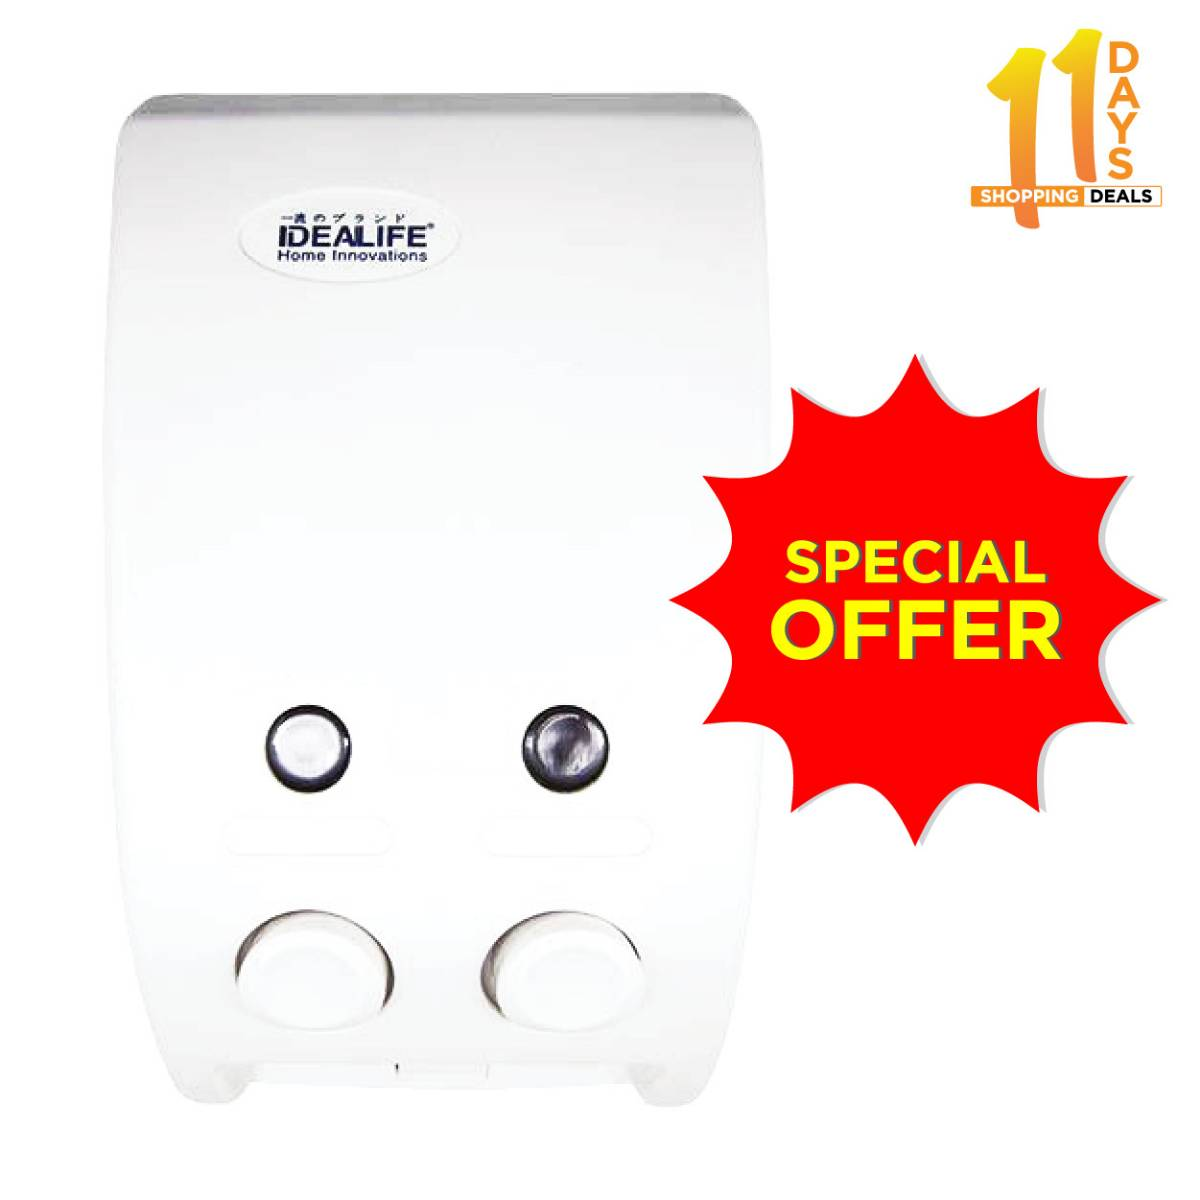 [promo Fbo 11.11] Idealife - Liquid Dispenser (2 Buttons) - Tempat Sabun Cair 2 Tabung - I...0